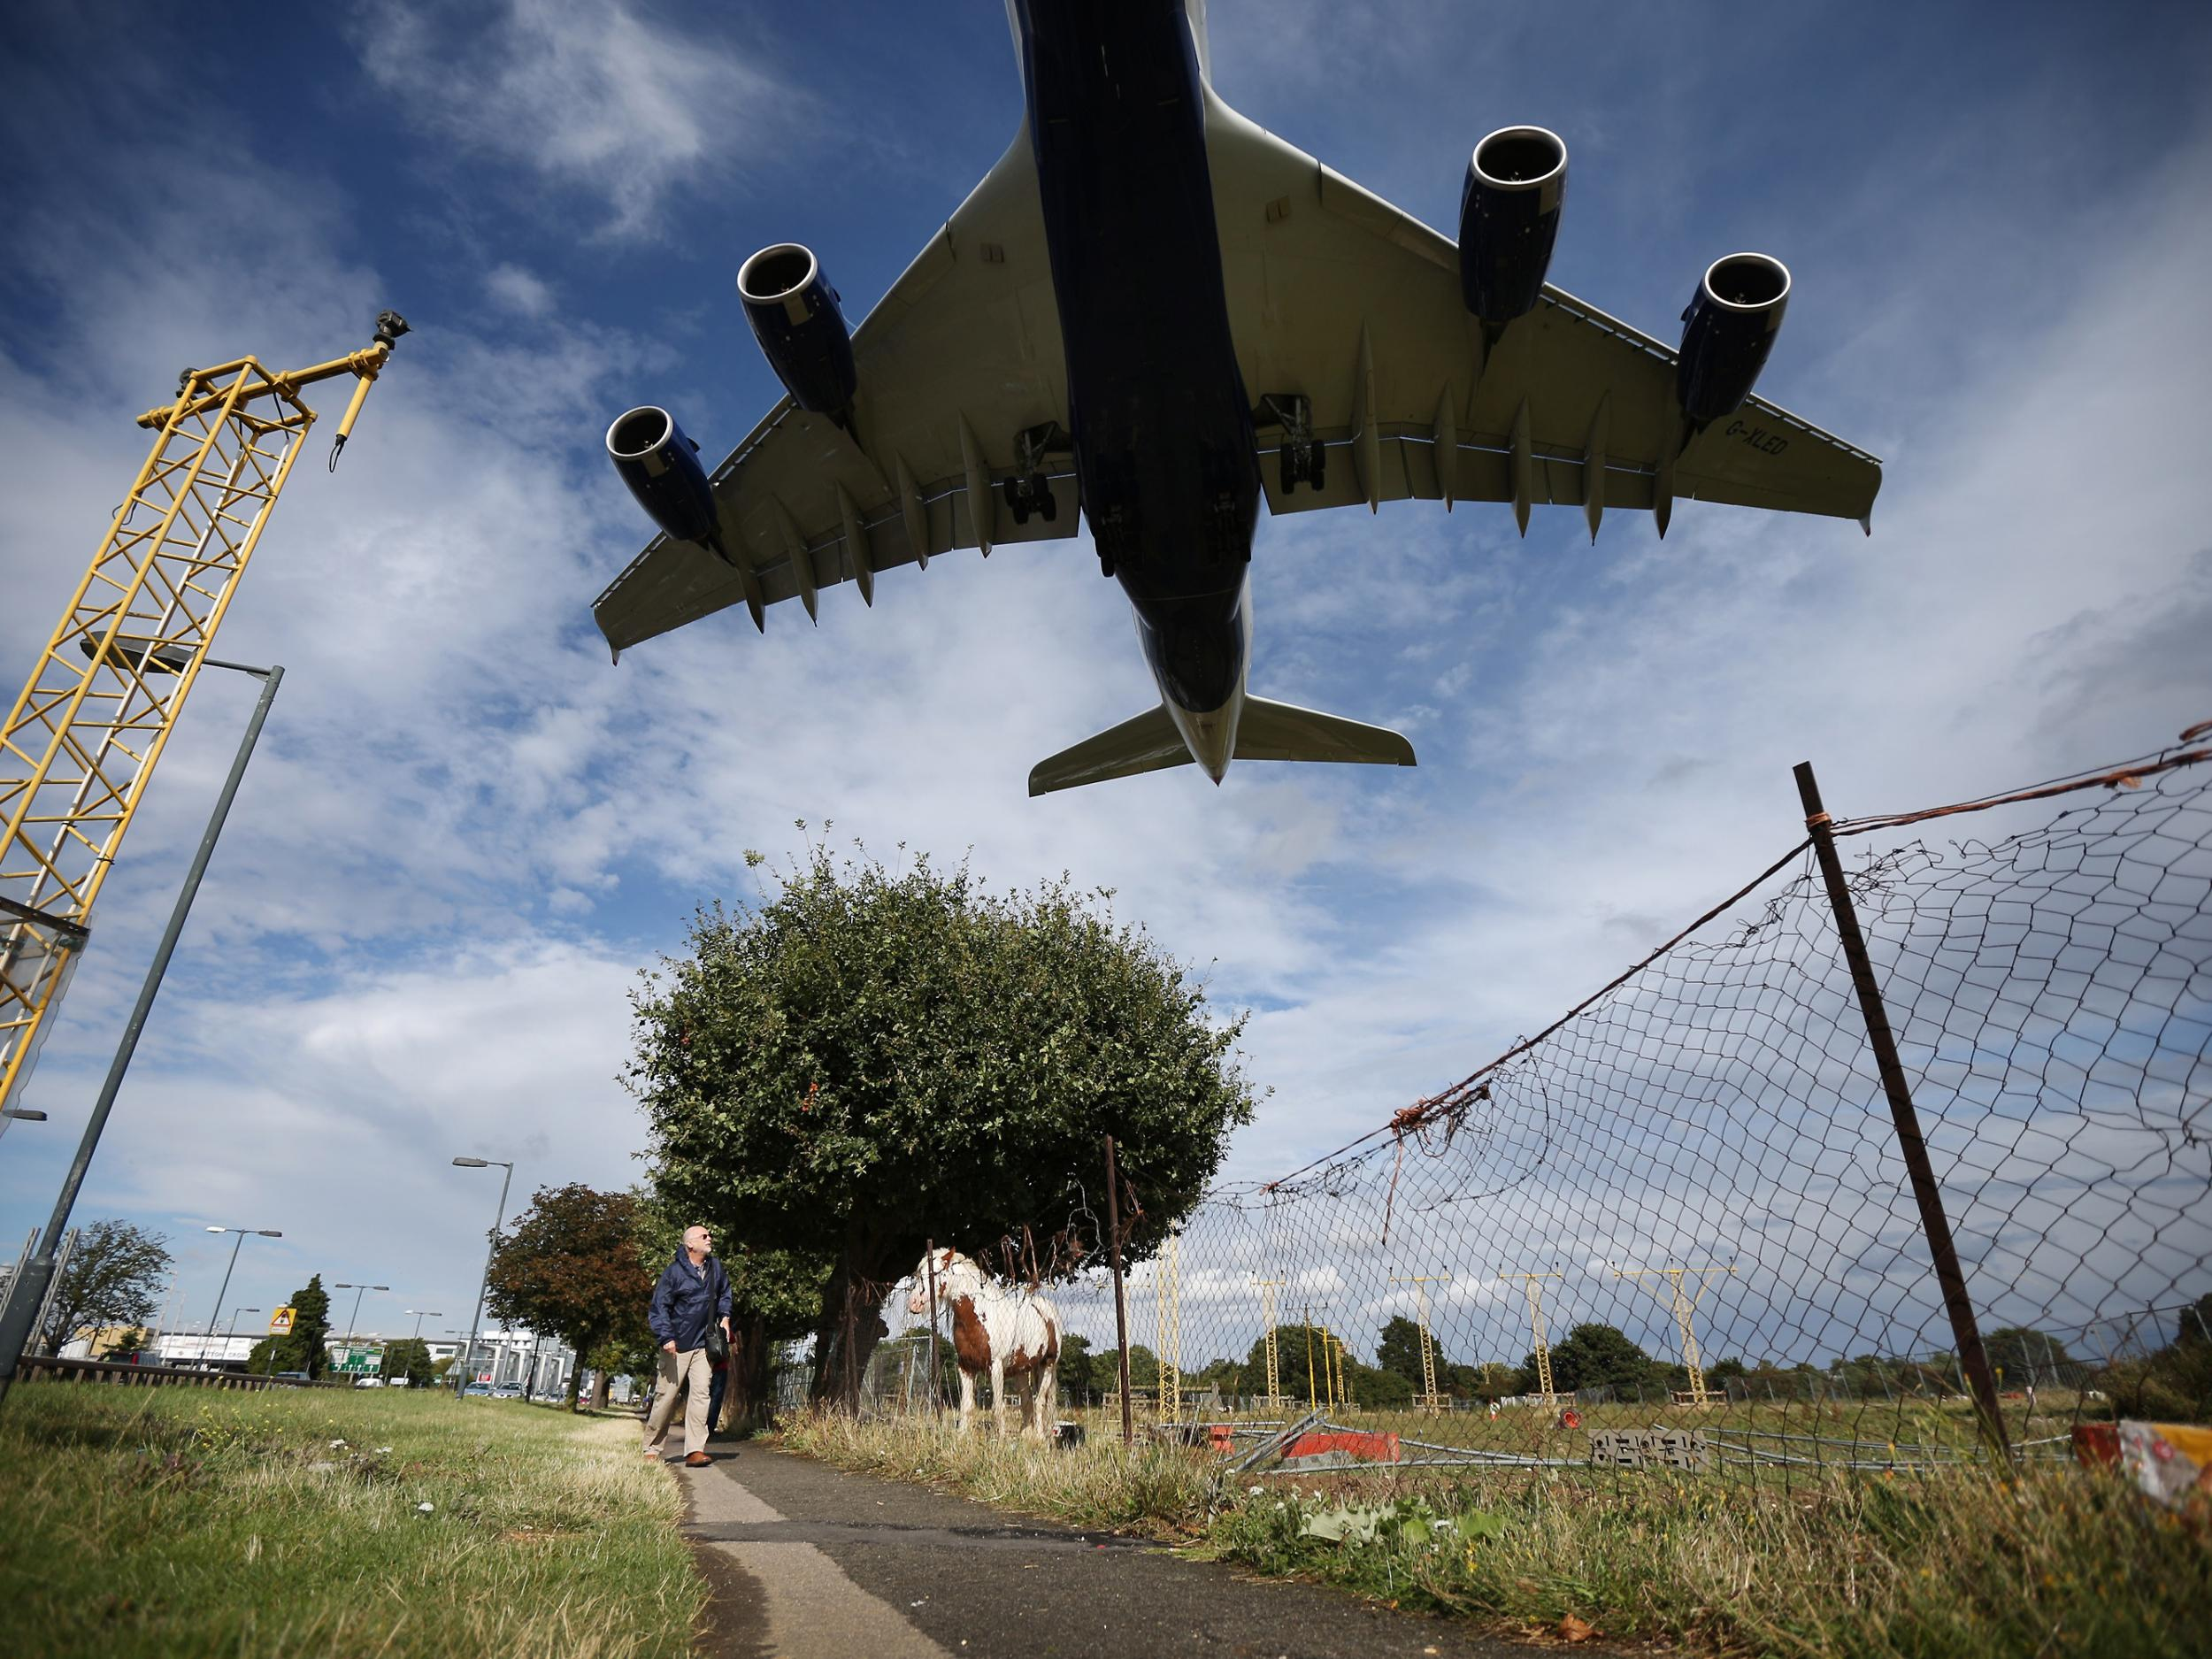 Heathrow expansion: What will happen with the airport's